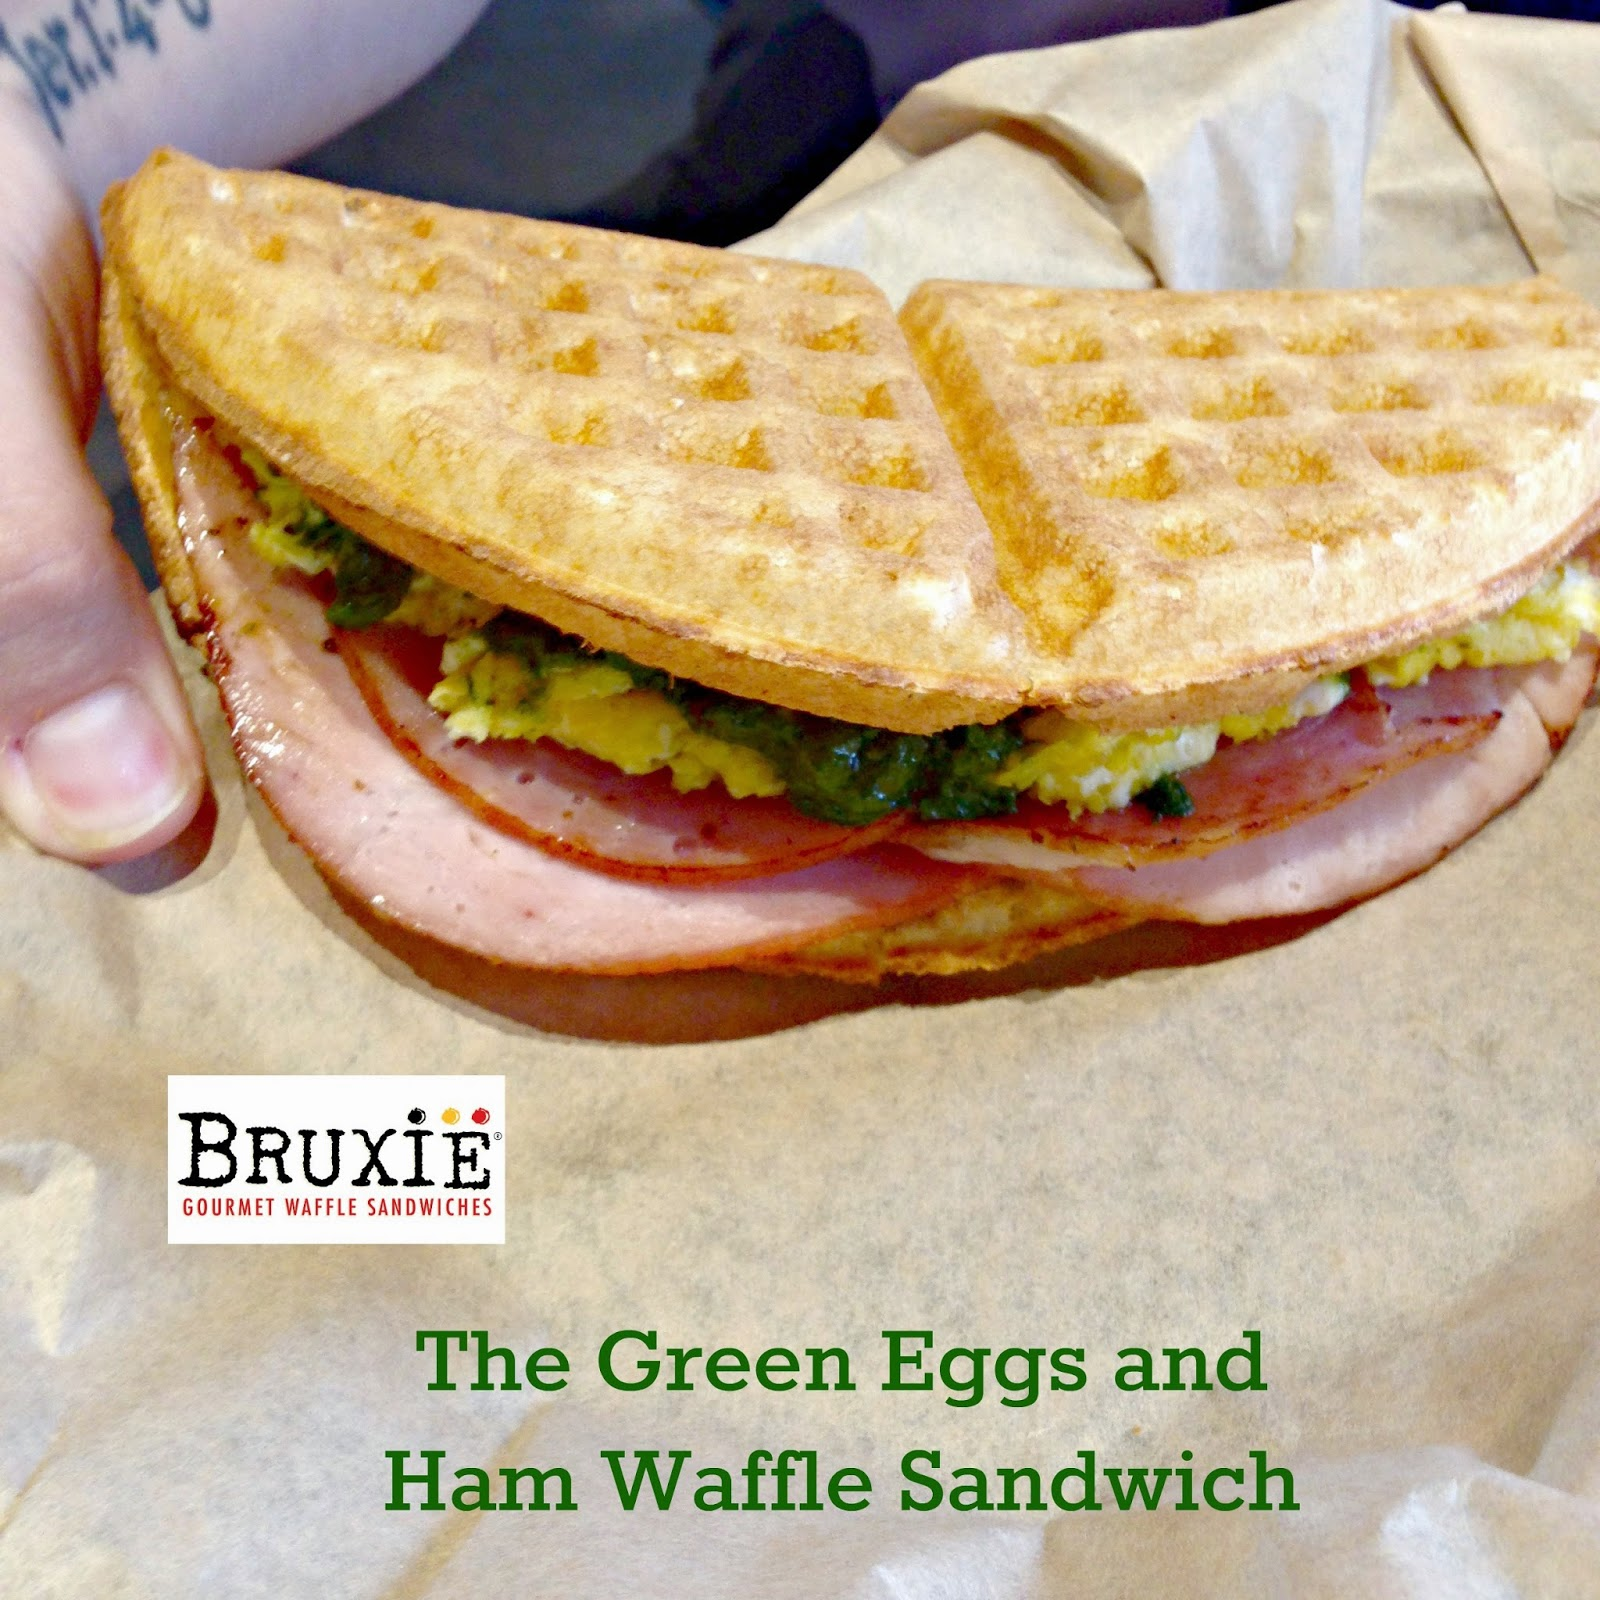 Bruxie Gourmet Waffle Sandwiches - Now Open in #Denver #Colorado #BruxieWaffles